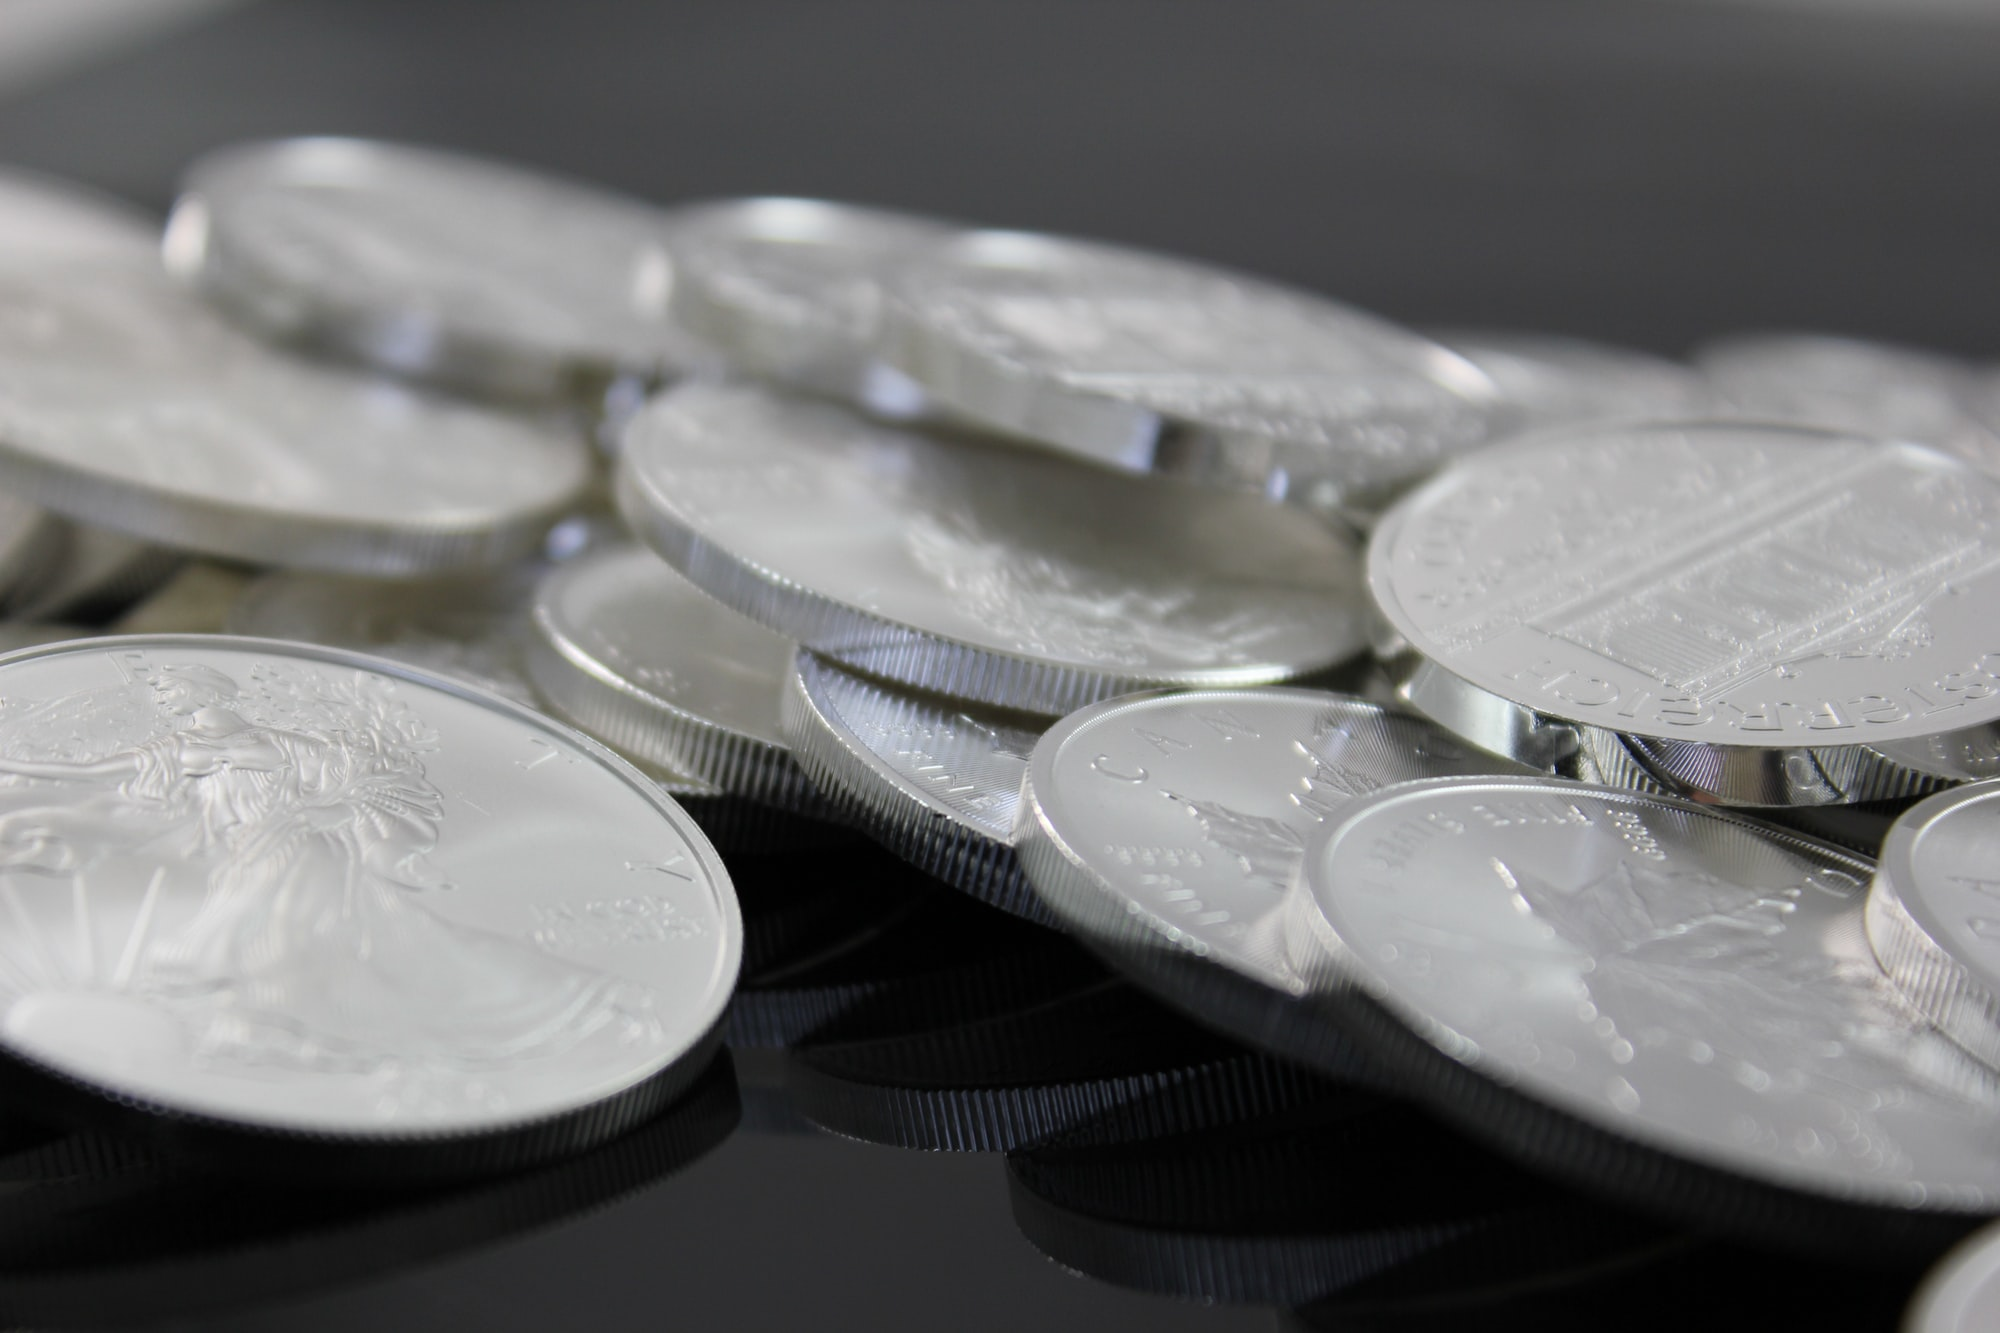 Pile of silver bullion coins. Münze Österreich, Royal Canadian Mint, U.S. Mint, Australian Mint of Perth and Krugerrand. If you use our photos, please add credit to https://zlataky.cz, when possible